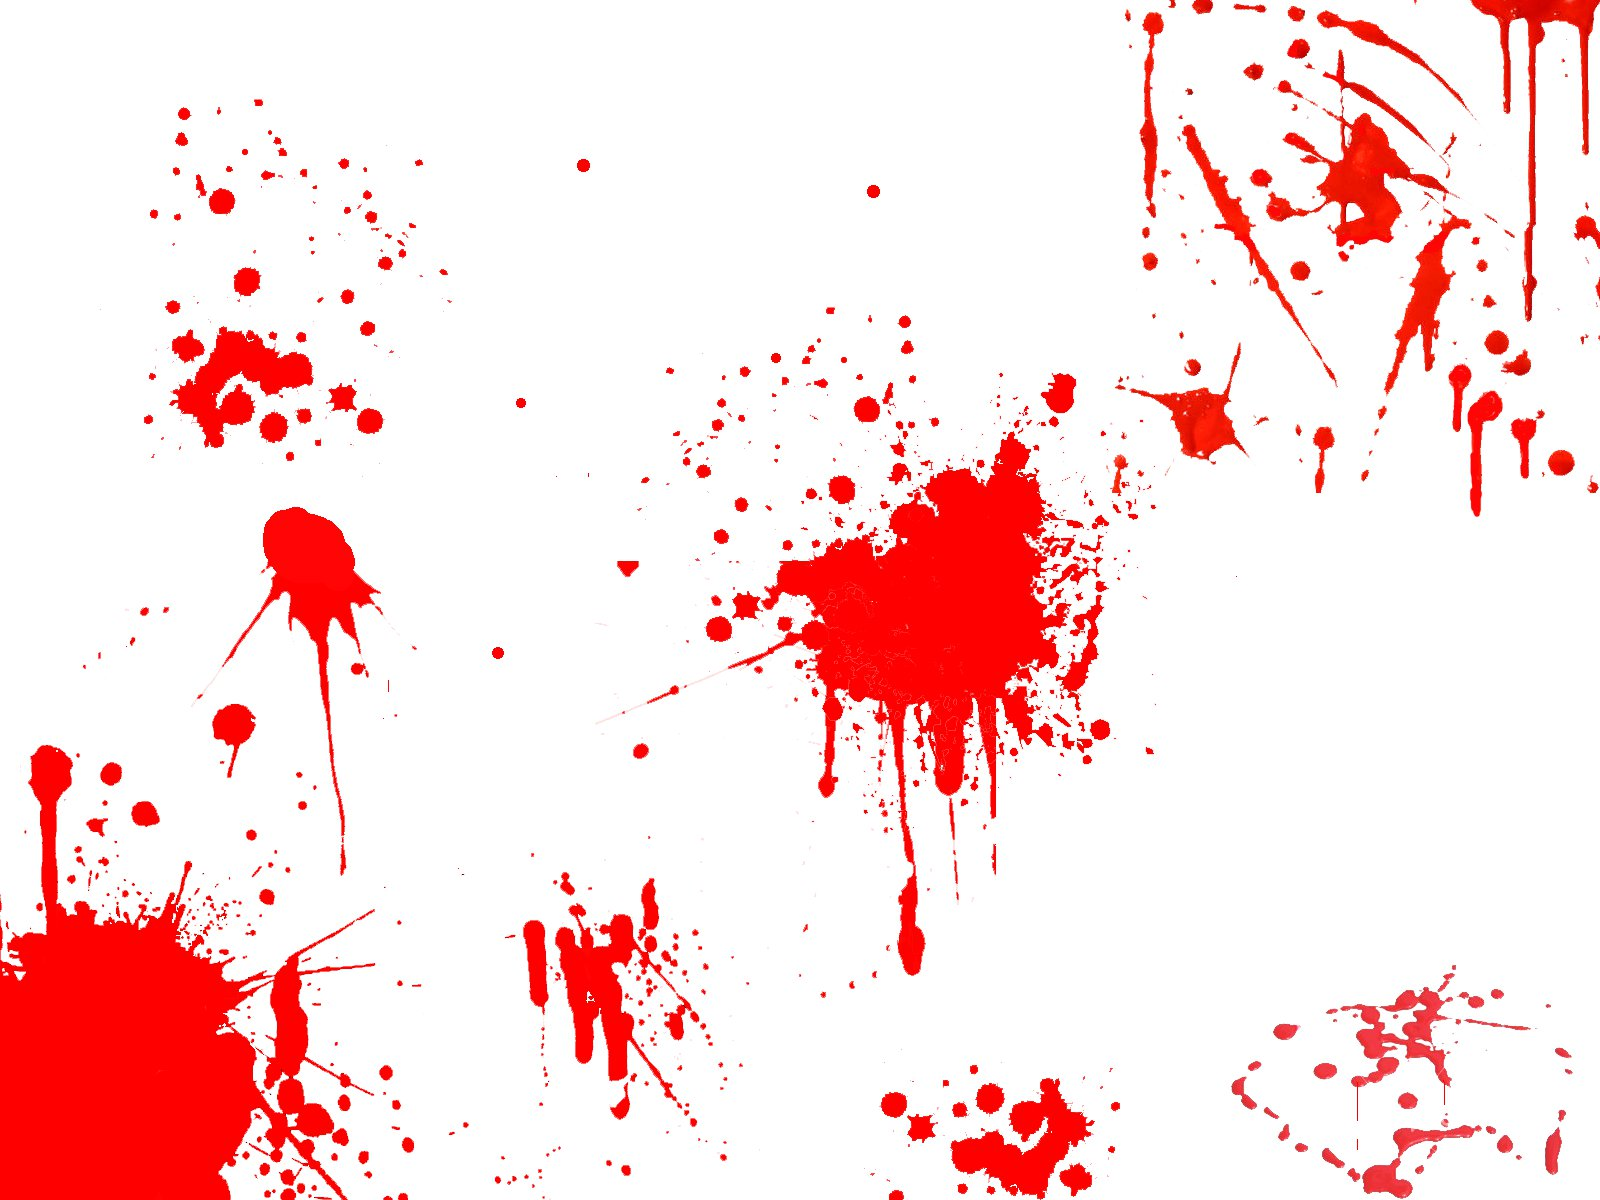 Dexter Wallpaper Blood Splatter - WallpaperSafari